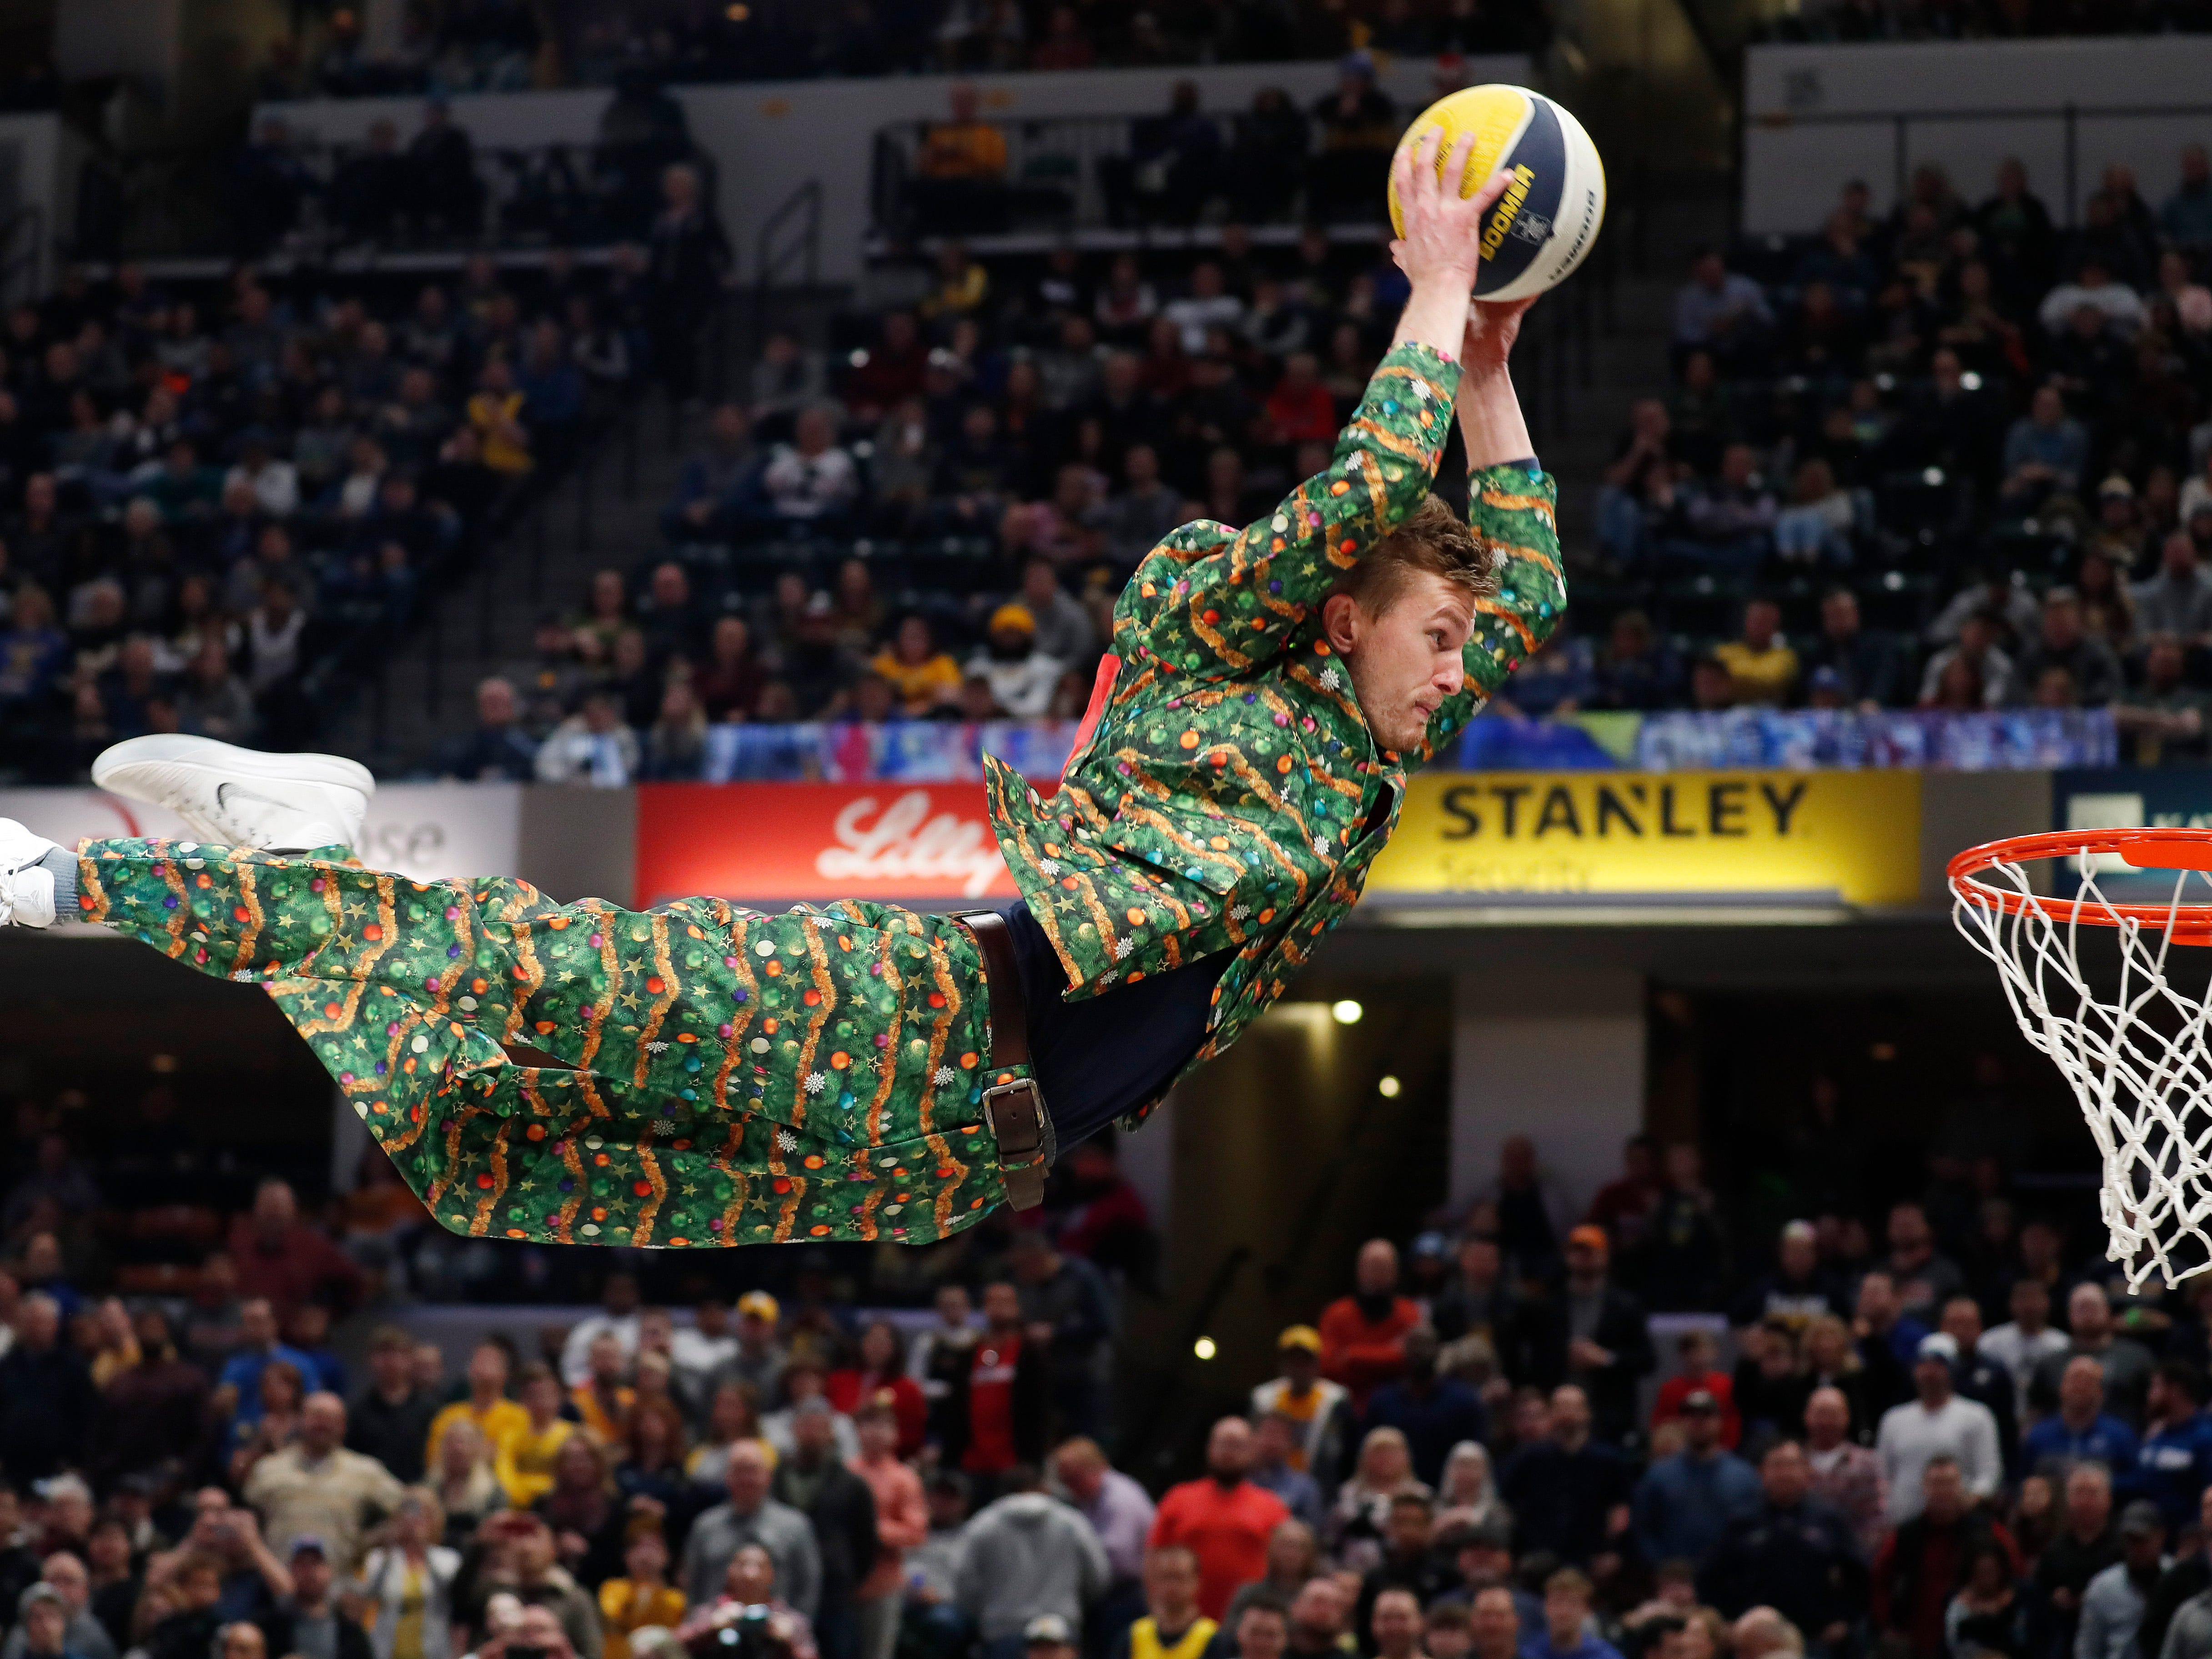 Dec. 23: A festively dressed member of the Pacers Power Pack entertains the crowd with an acrobatic dunk at Bankers Life Fieldhouse.